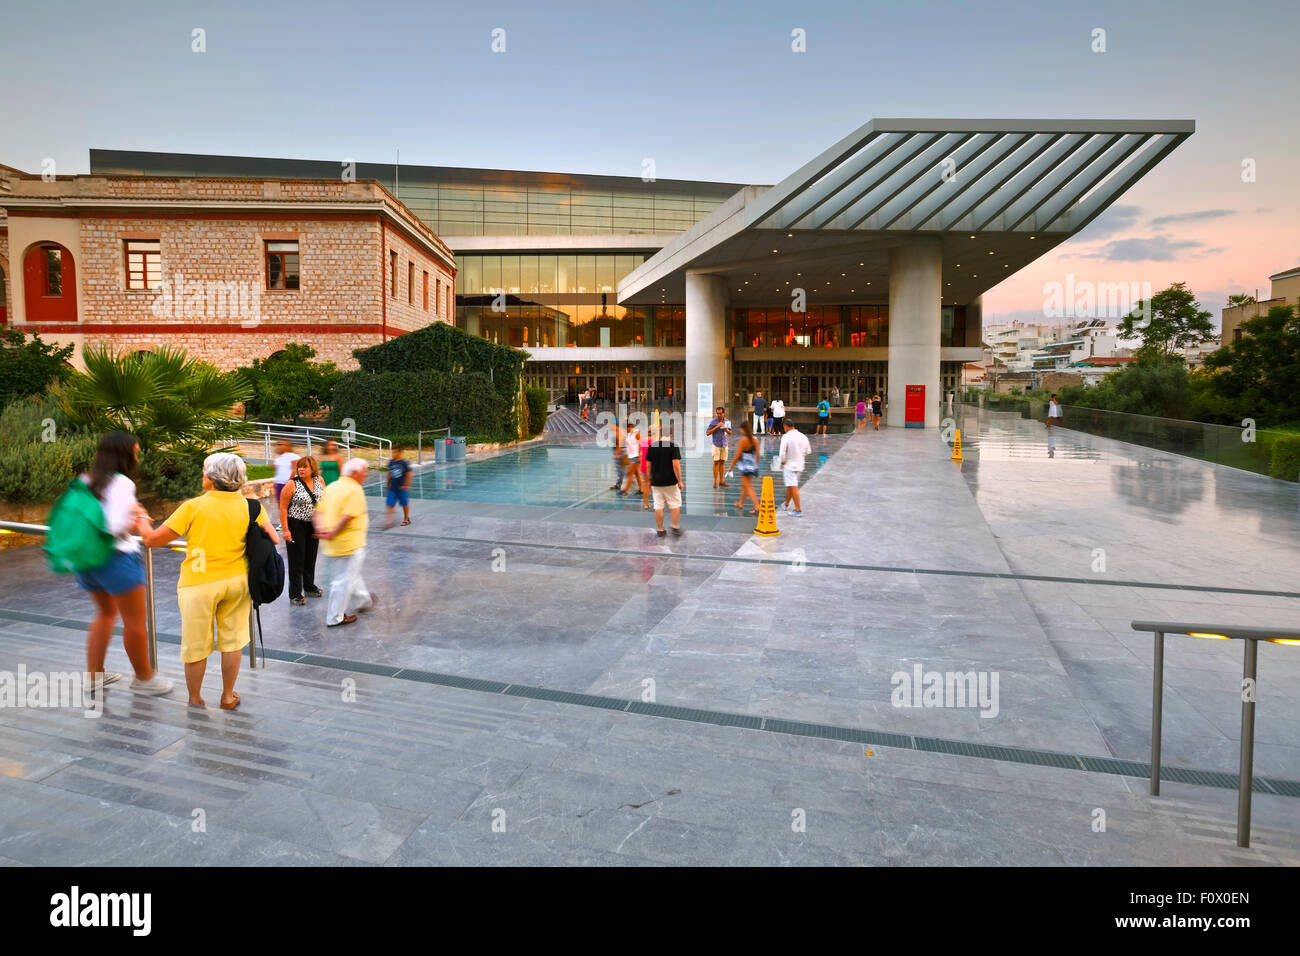 Tourists in front of the main entrance of the Acropolis museum in Athens, Greece - Stock Image